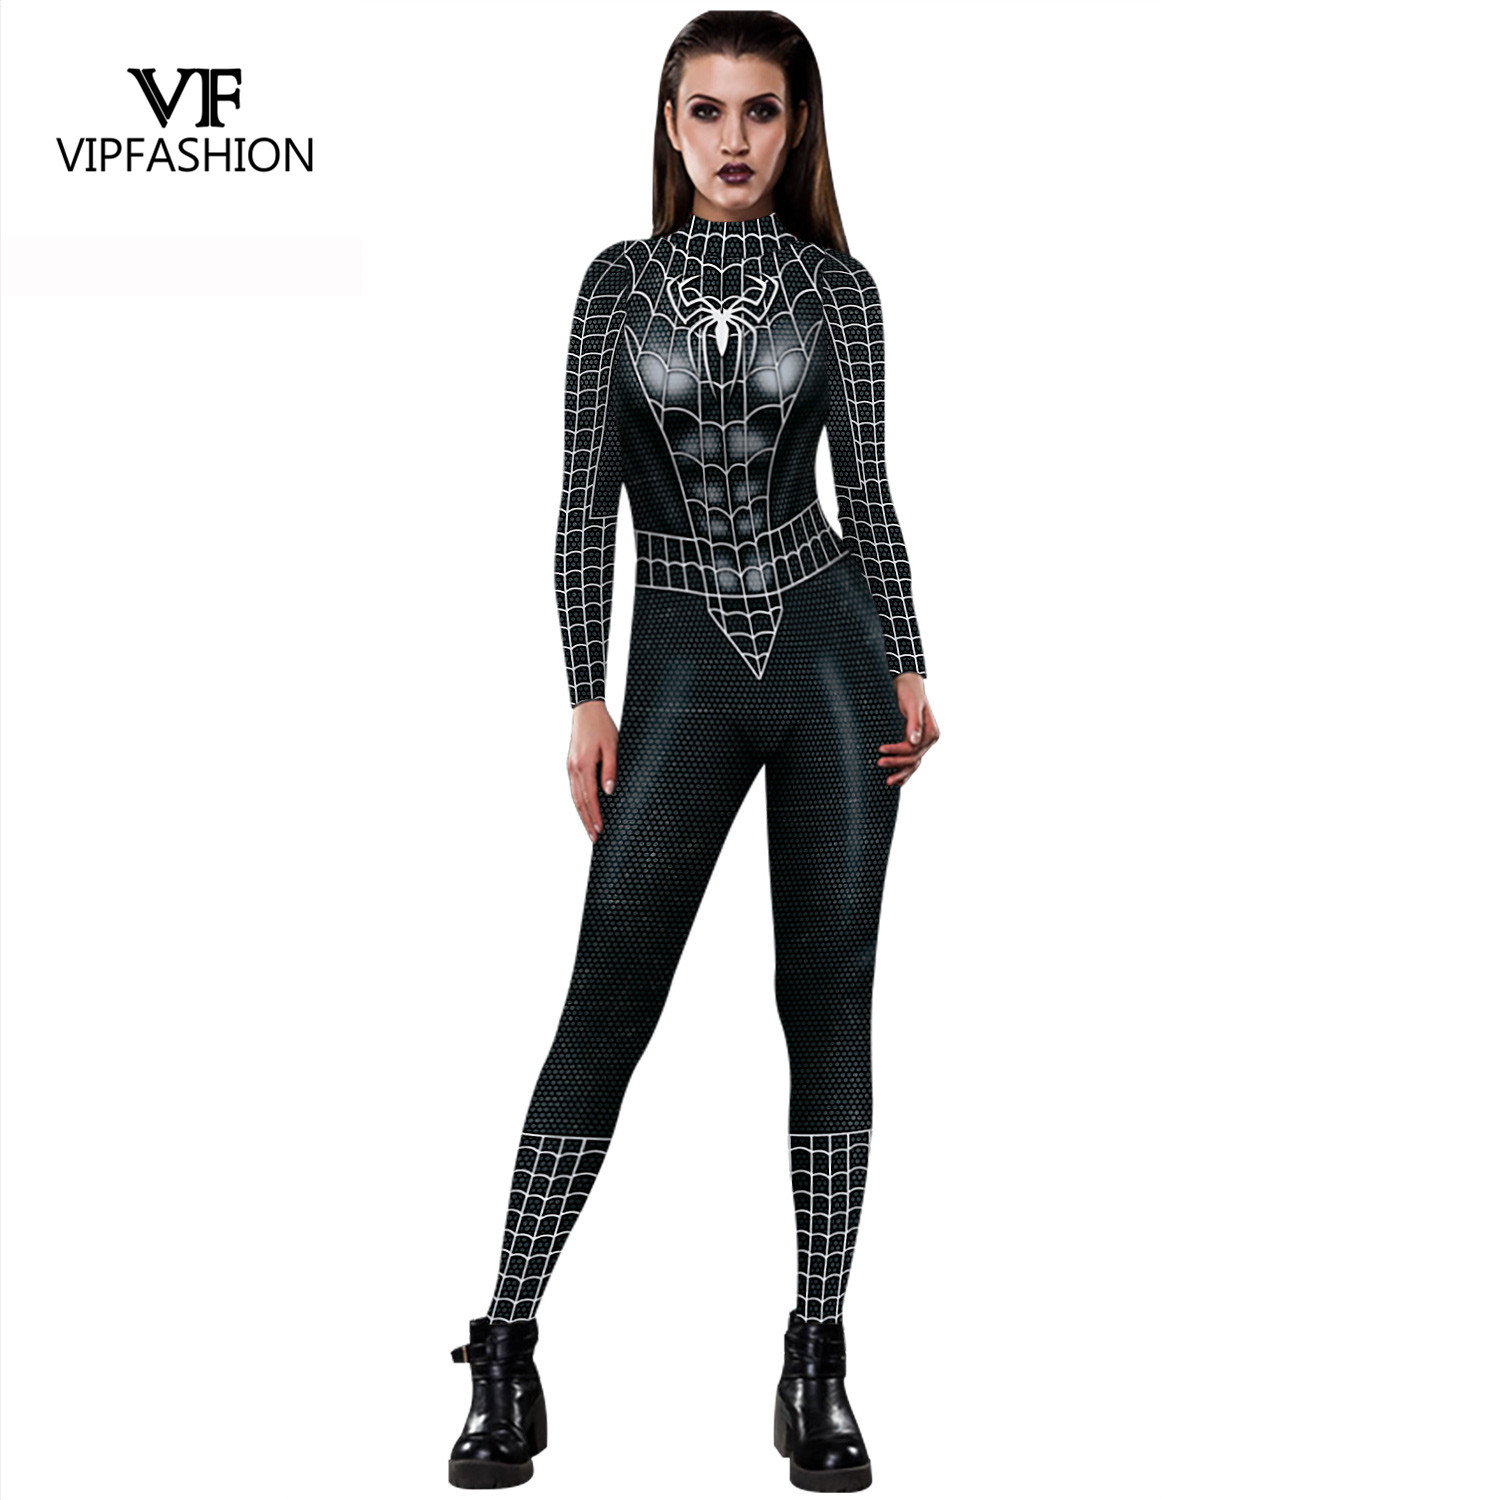 VIP FASHION 2019 New Cosplay 3D Black Spider Printed Super Hero Costume Women Movie Cosplay Bodysuit For Women